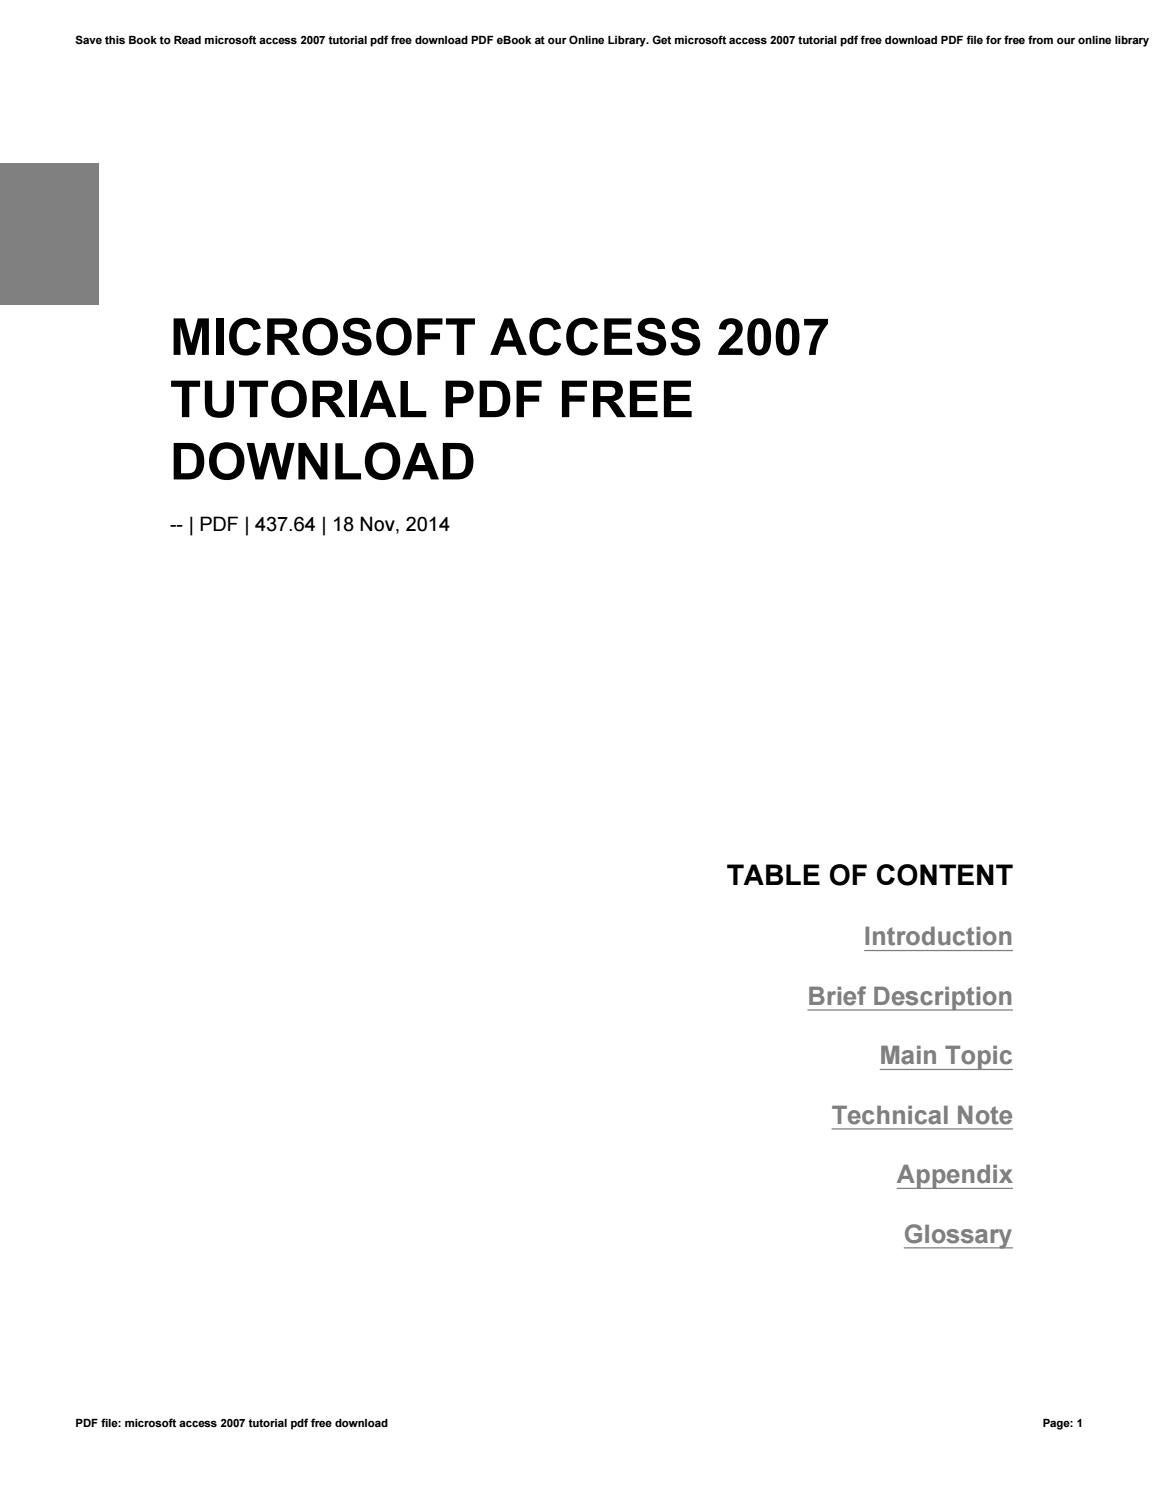 Microsoft access 2007 tutorial pdf free download by mdhc54 issuu fandeluxe Image collections